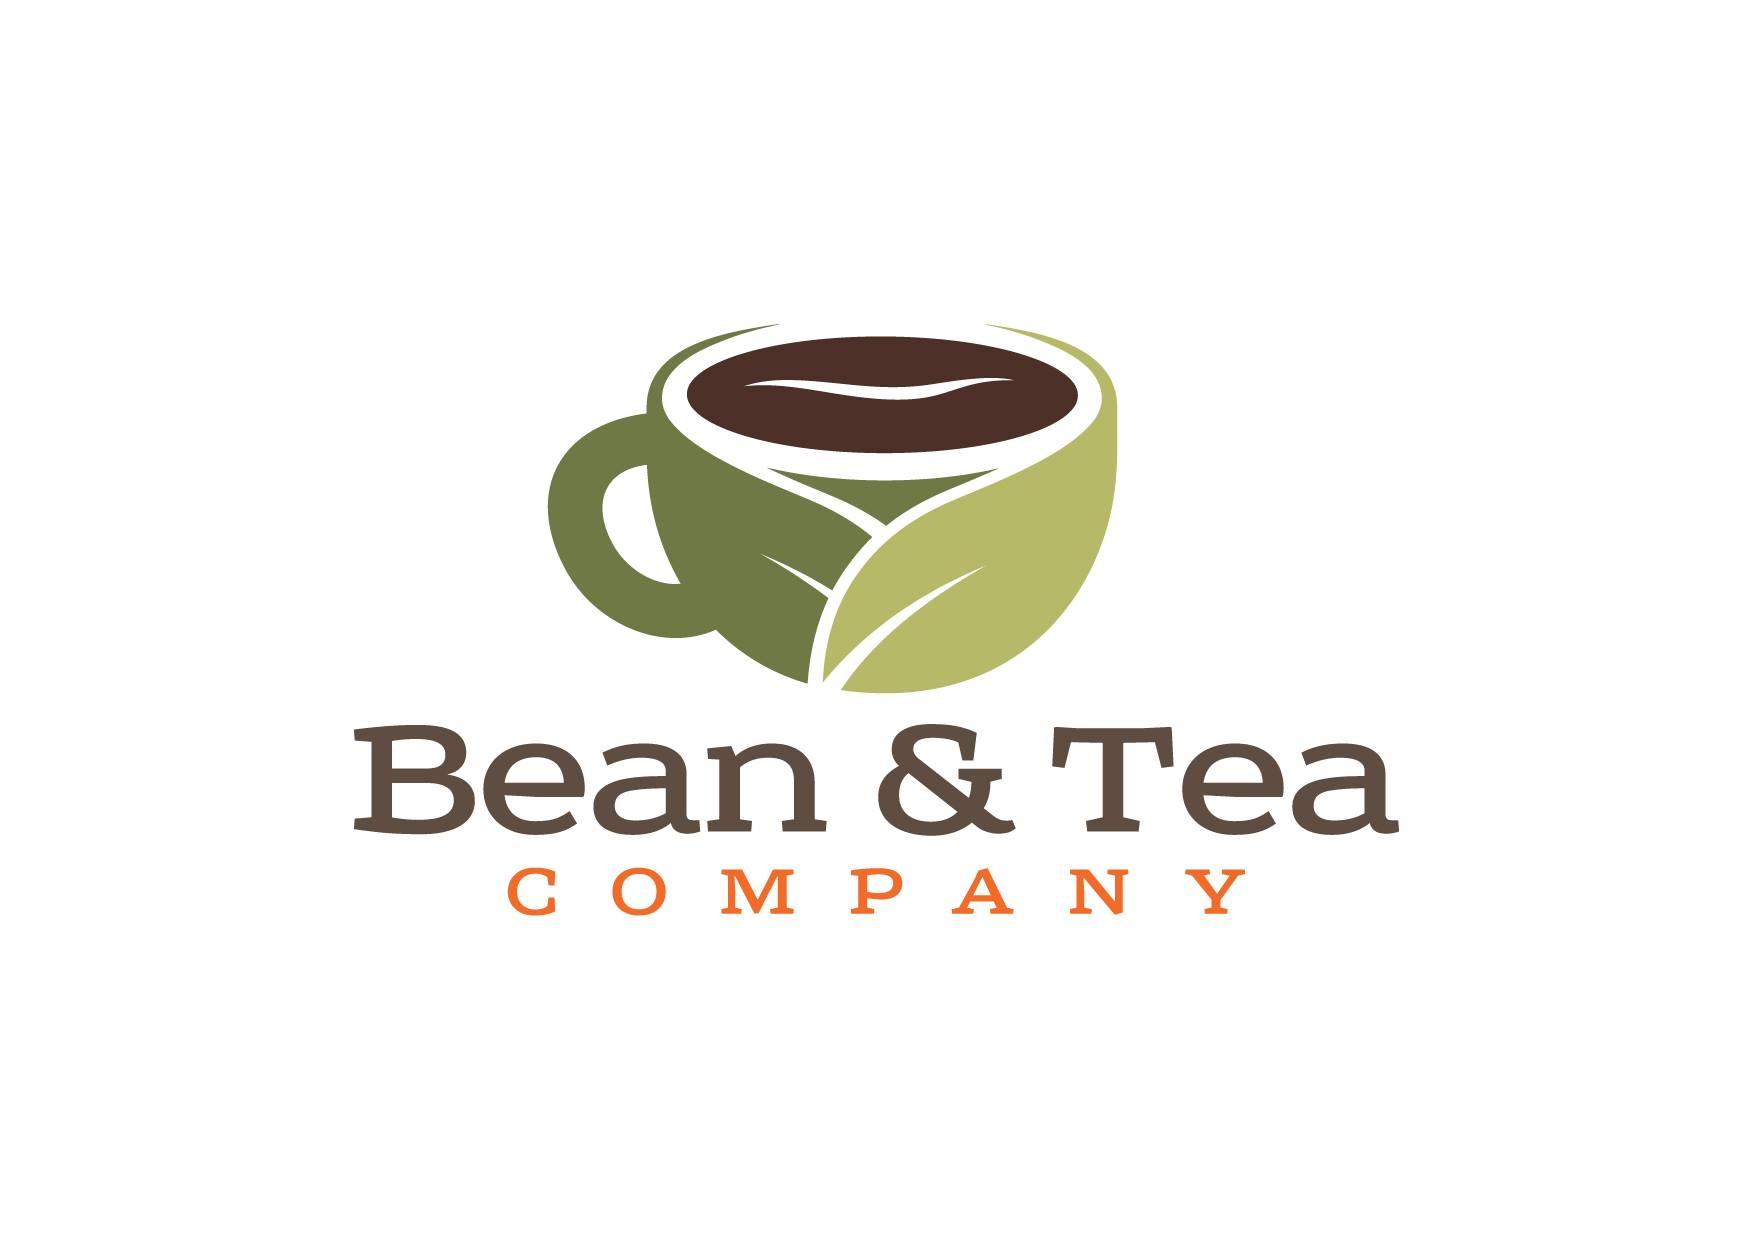 Bean & Tea Company